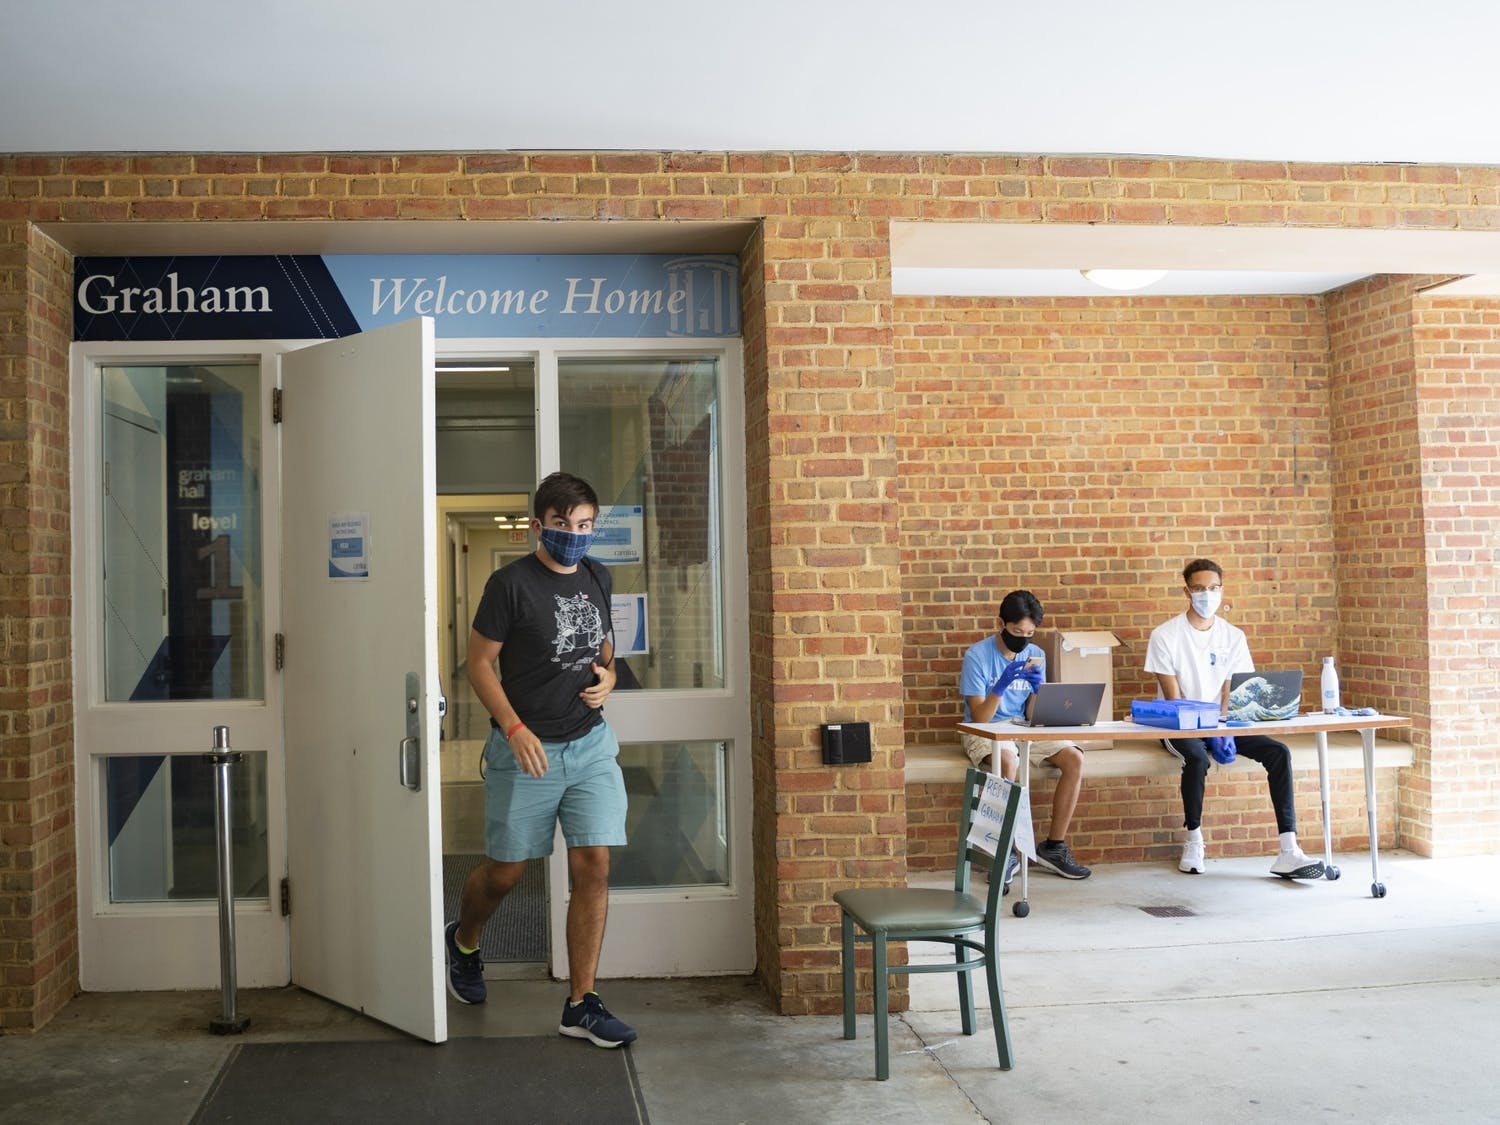 Tyler Smith, an incoming first-year, exits Graham Residence Hall wearing a mask as two RA's, sophomores Tiel Pham (left) and Nigel Goins (right) sit in the entryway to assist with move-in on Wednesday, Aug. 5, 2020.